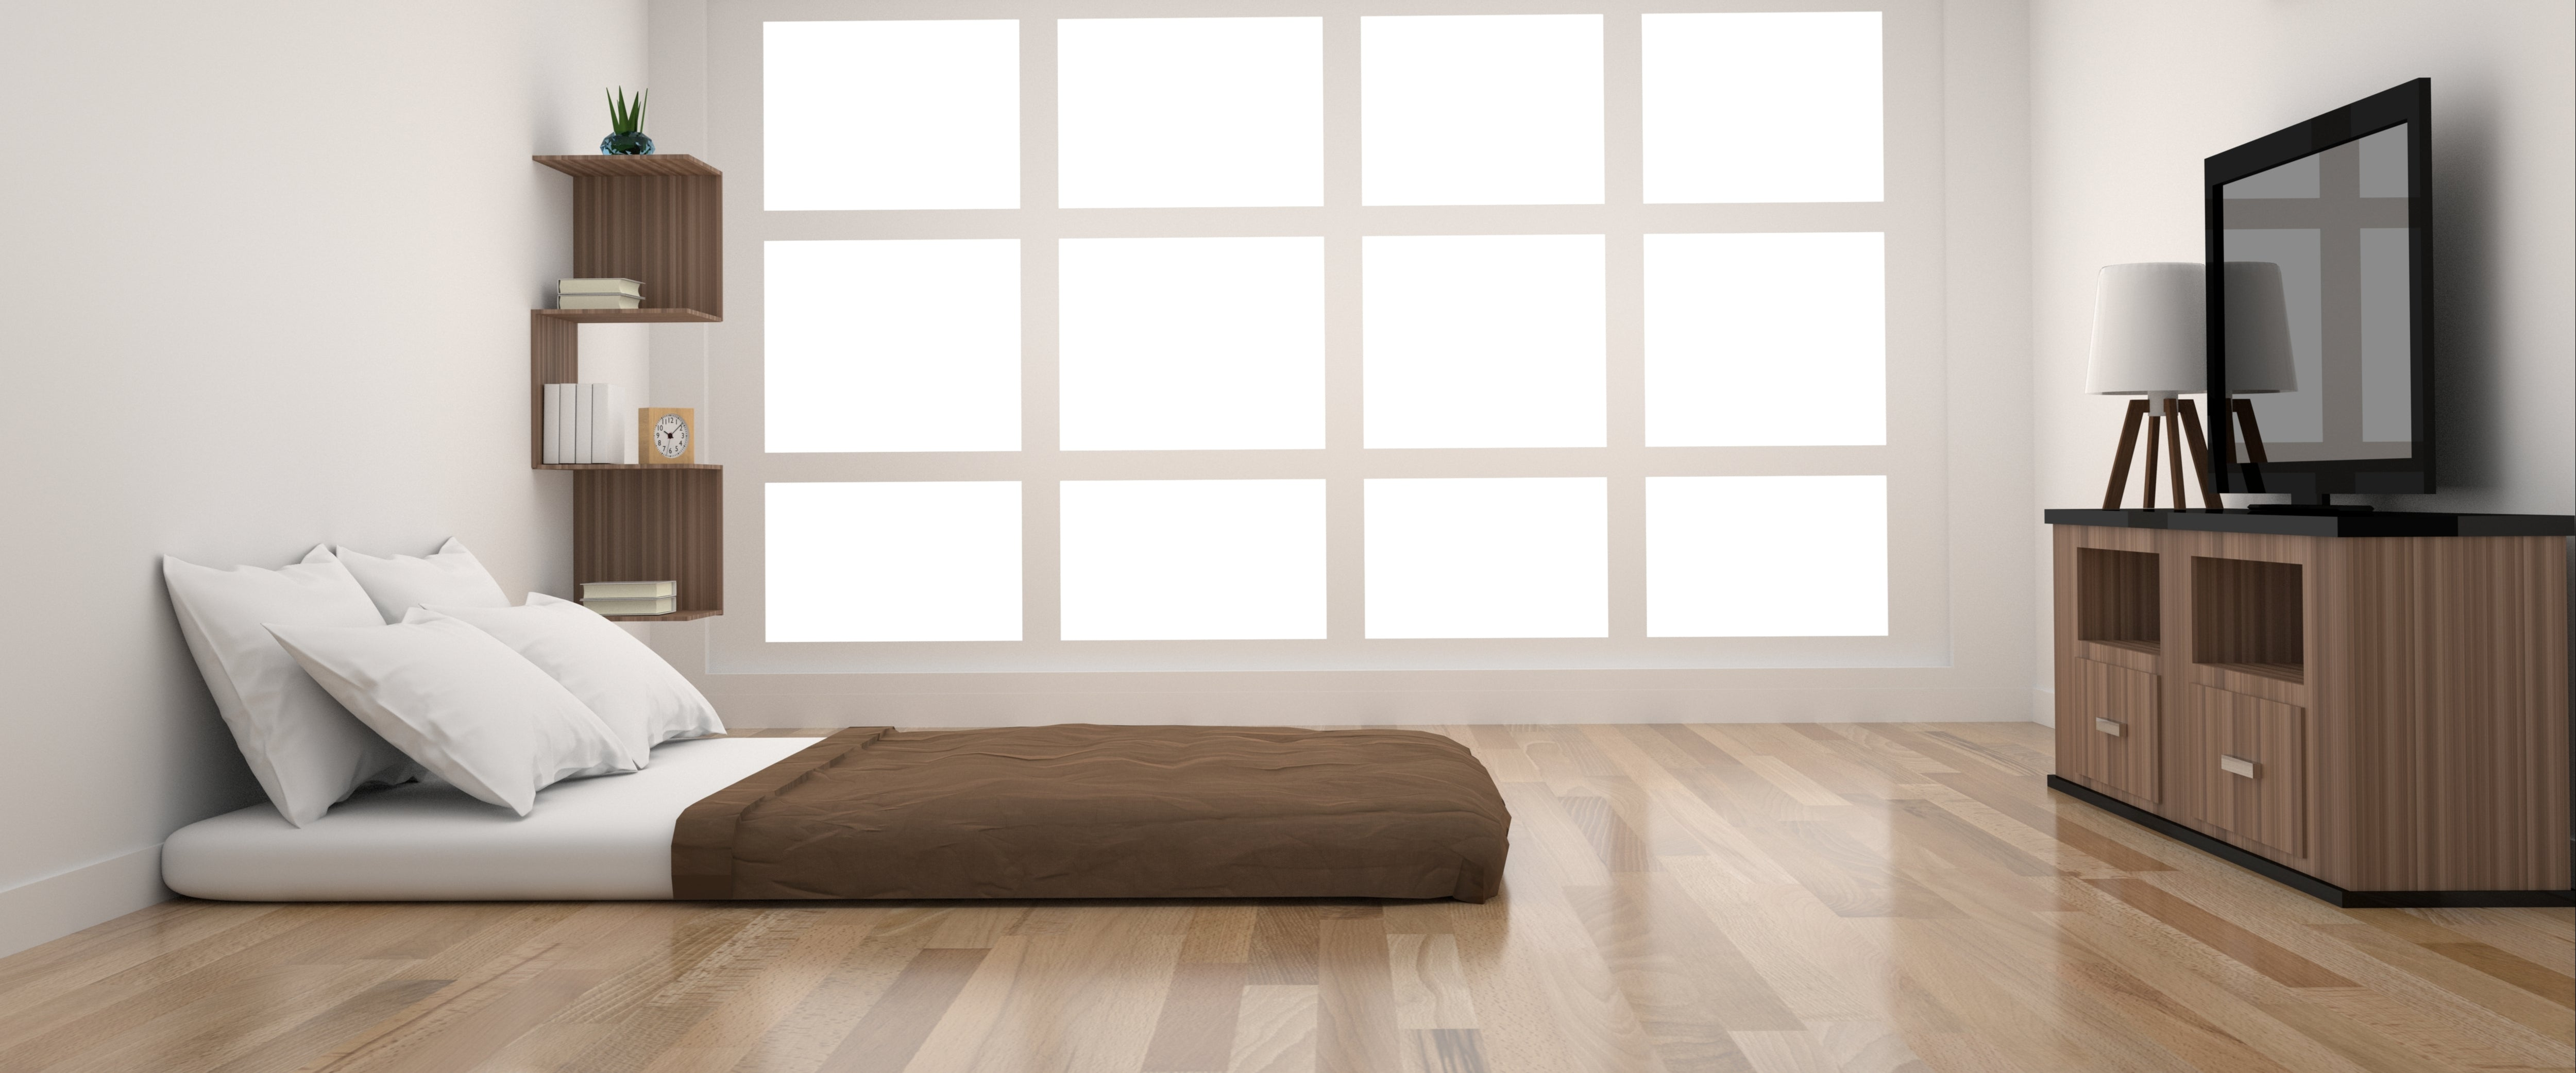 8 Things you Should Know Before Sleeping on a Mattress on the Floor